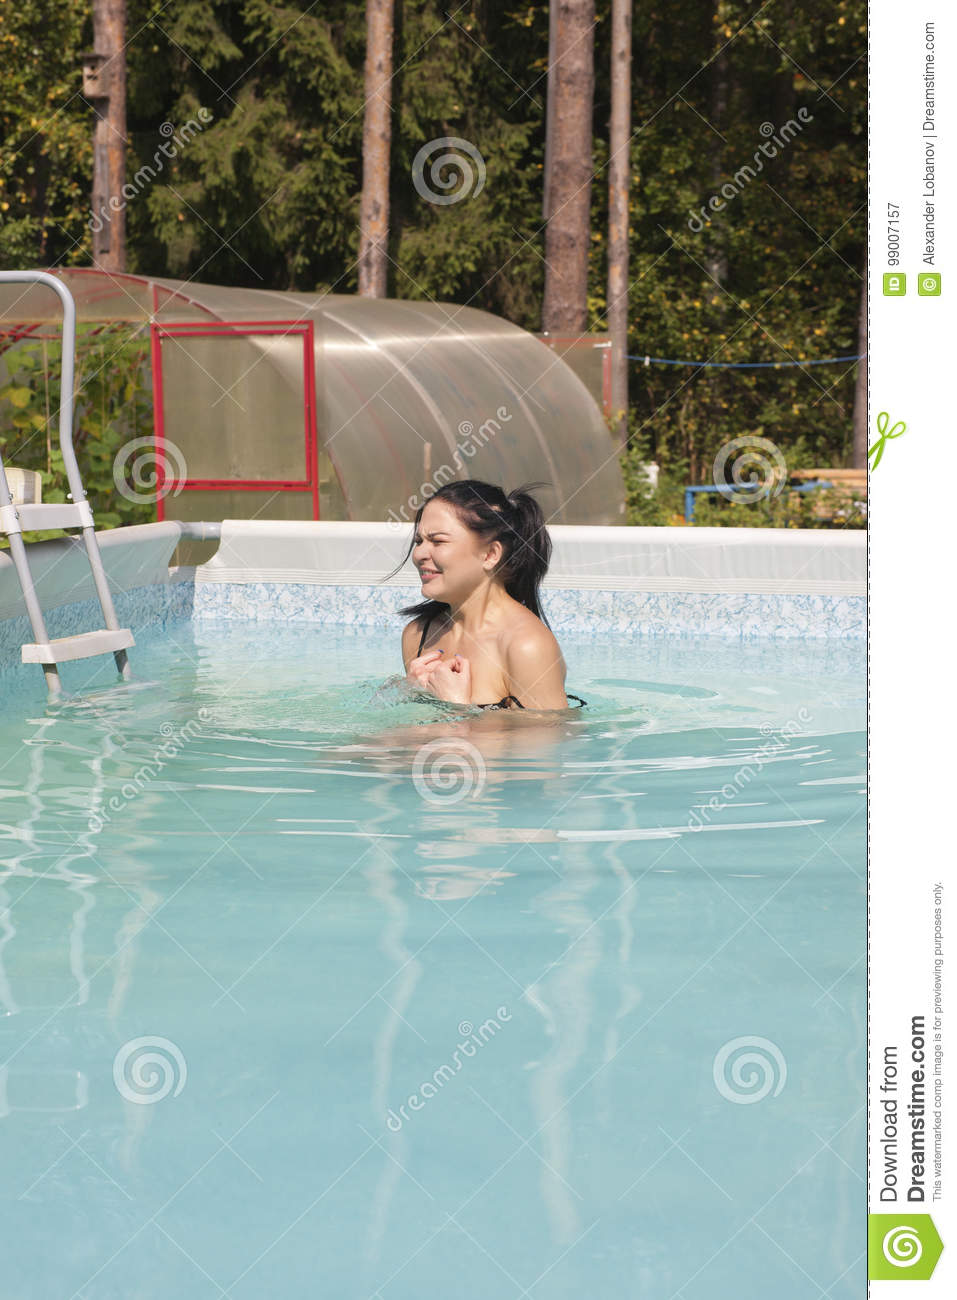 pictures of young girls at the pool nacked pics